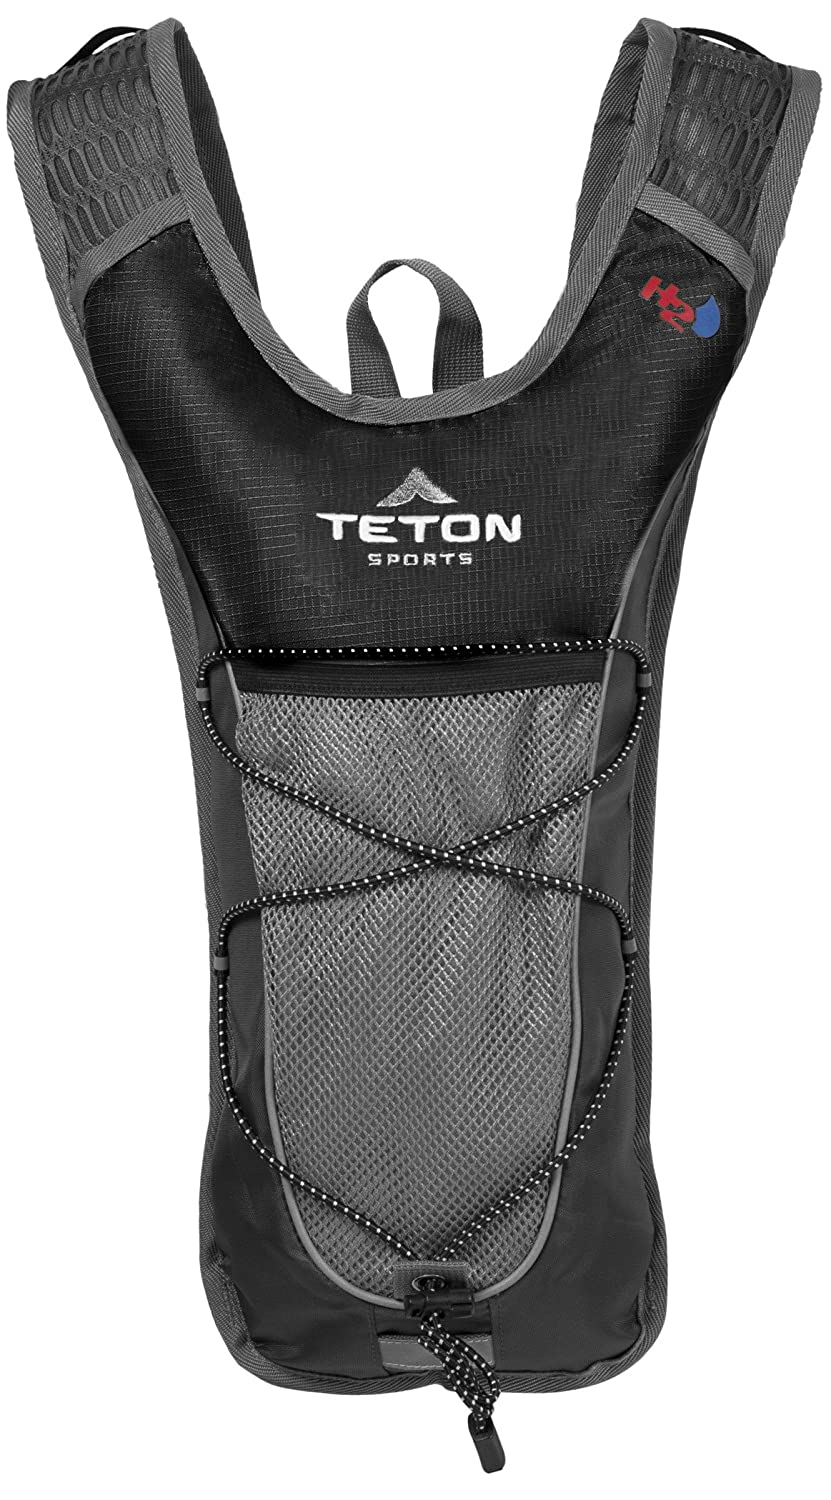 TETON Sports Trailrunner 2 Liter Hydration Backpack; Perfect for Trail Running, Cycling, Hiking